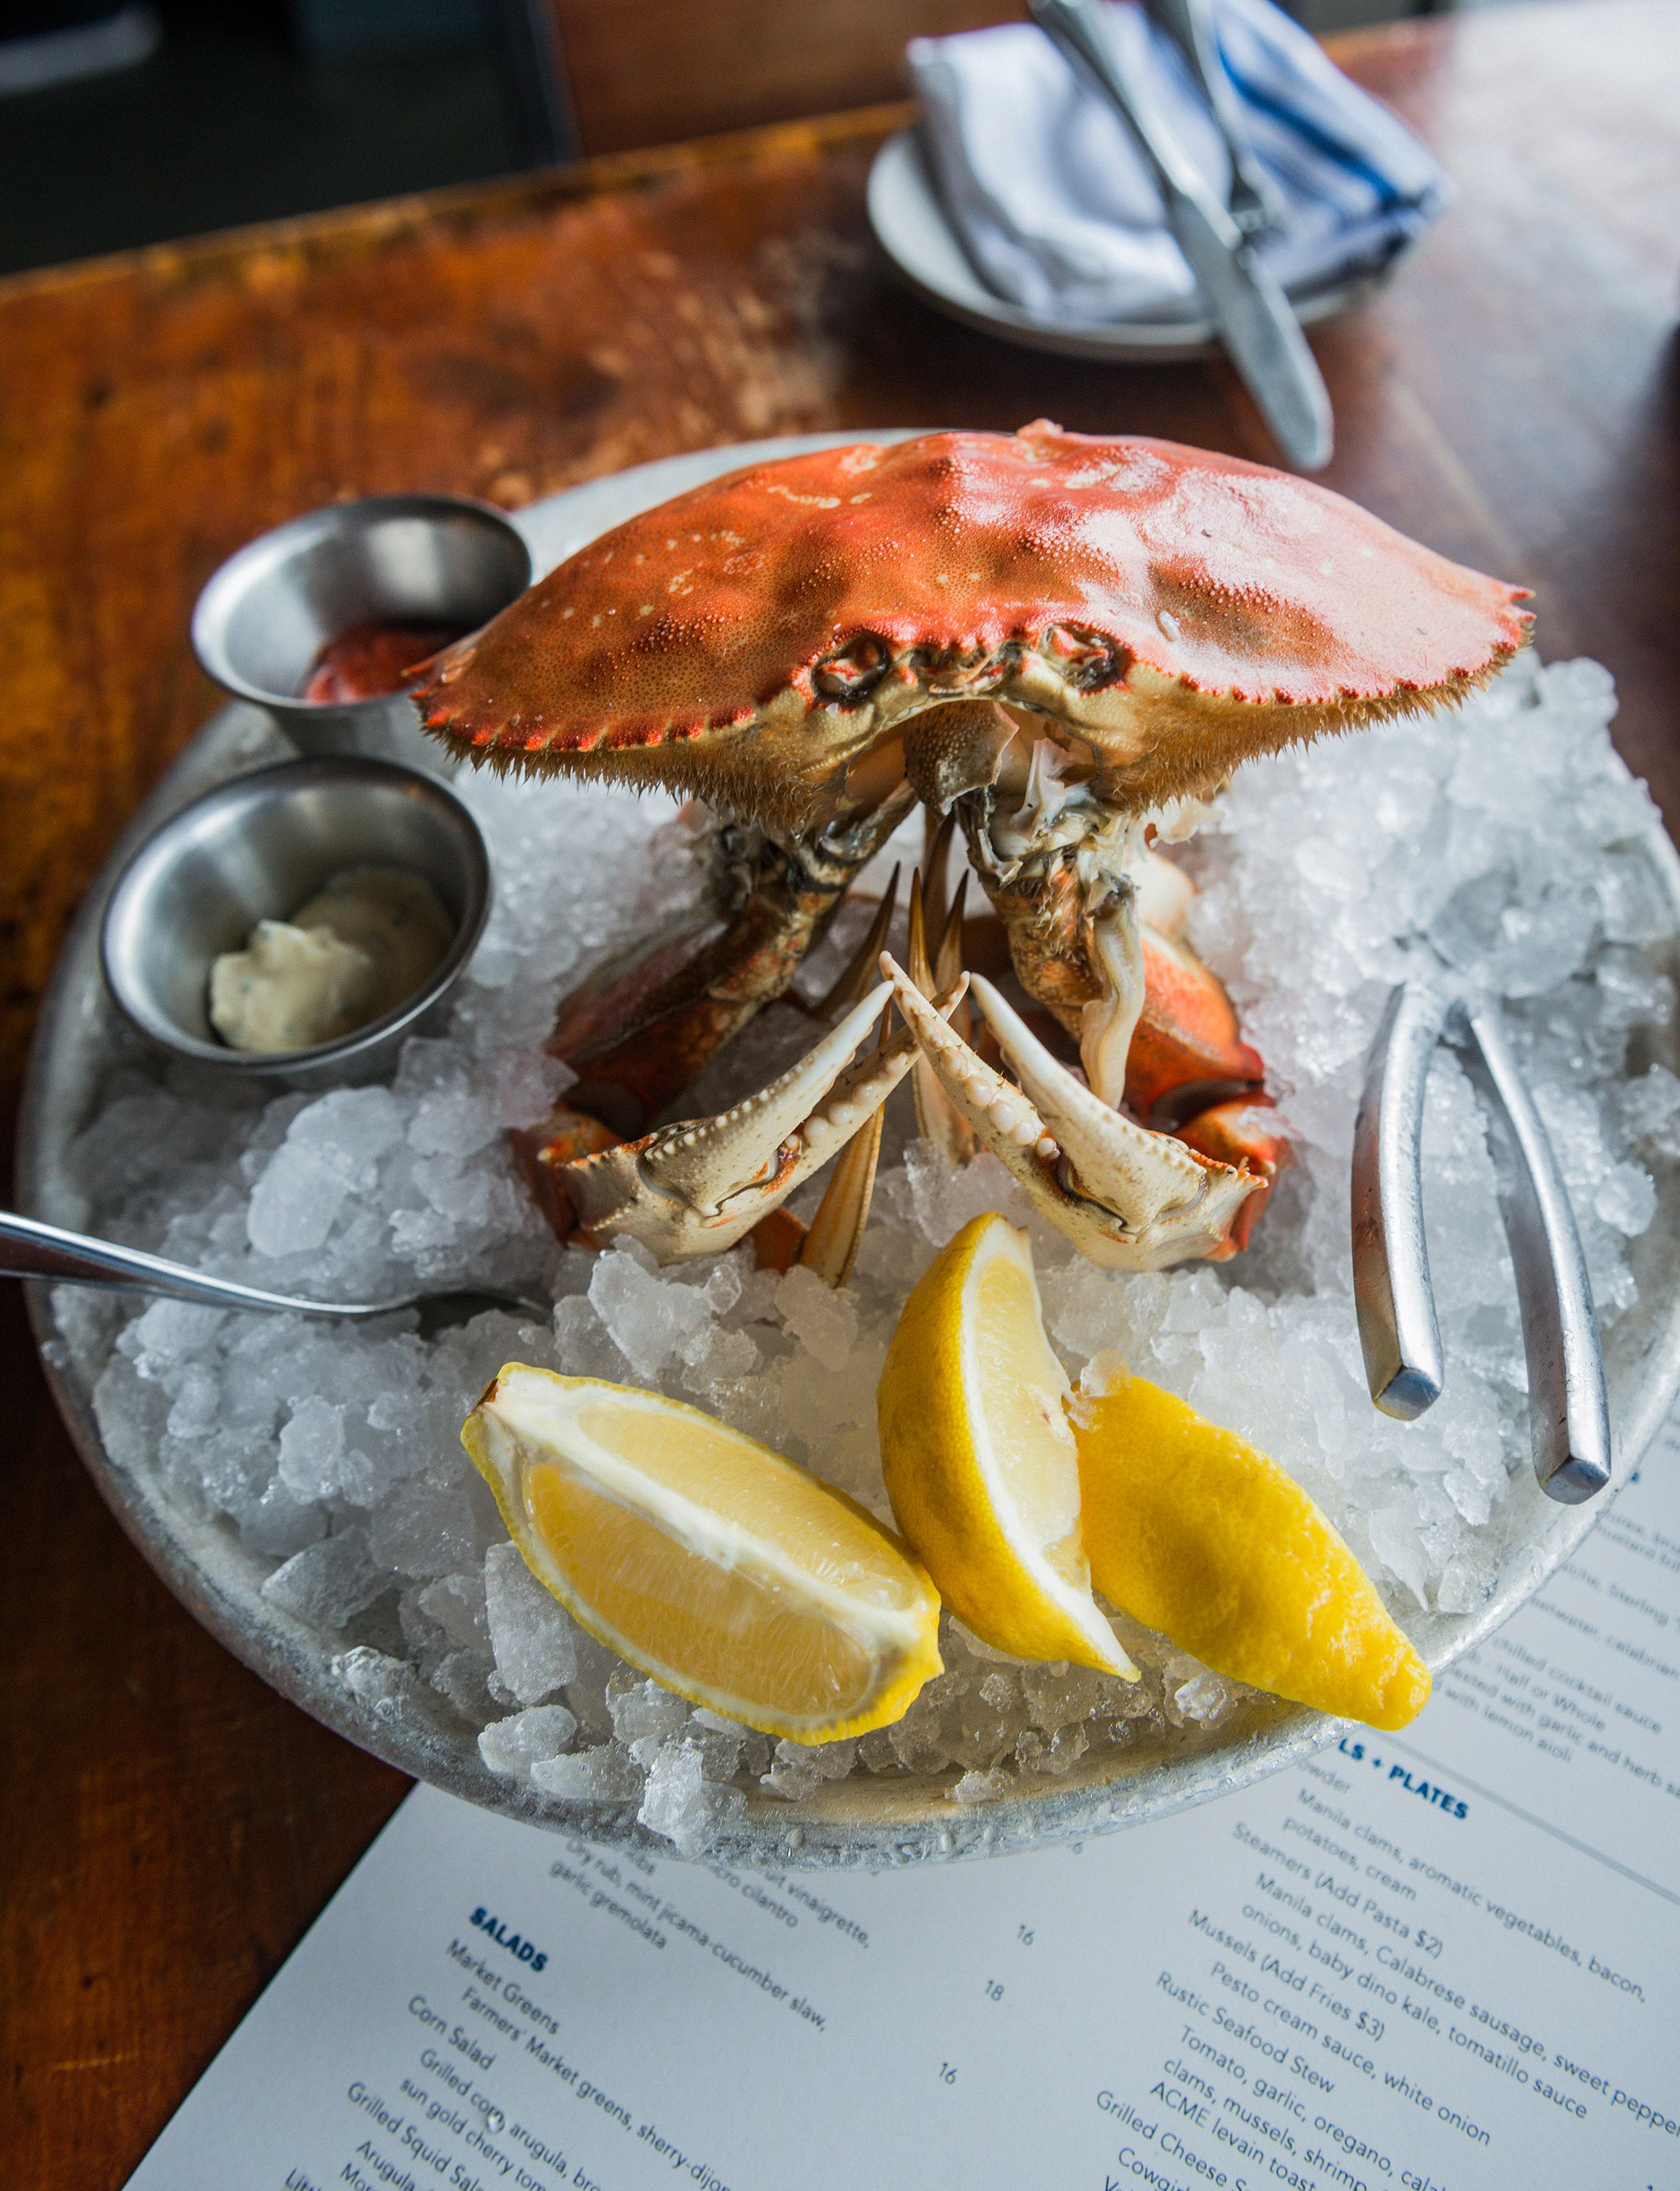 Don T Miss Happy Hour Review Of New England Lobster Market Eatery Burlingame Ca Tripadvisor